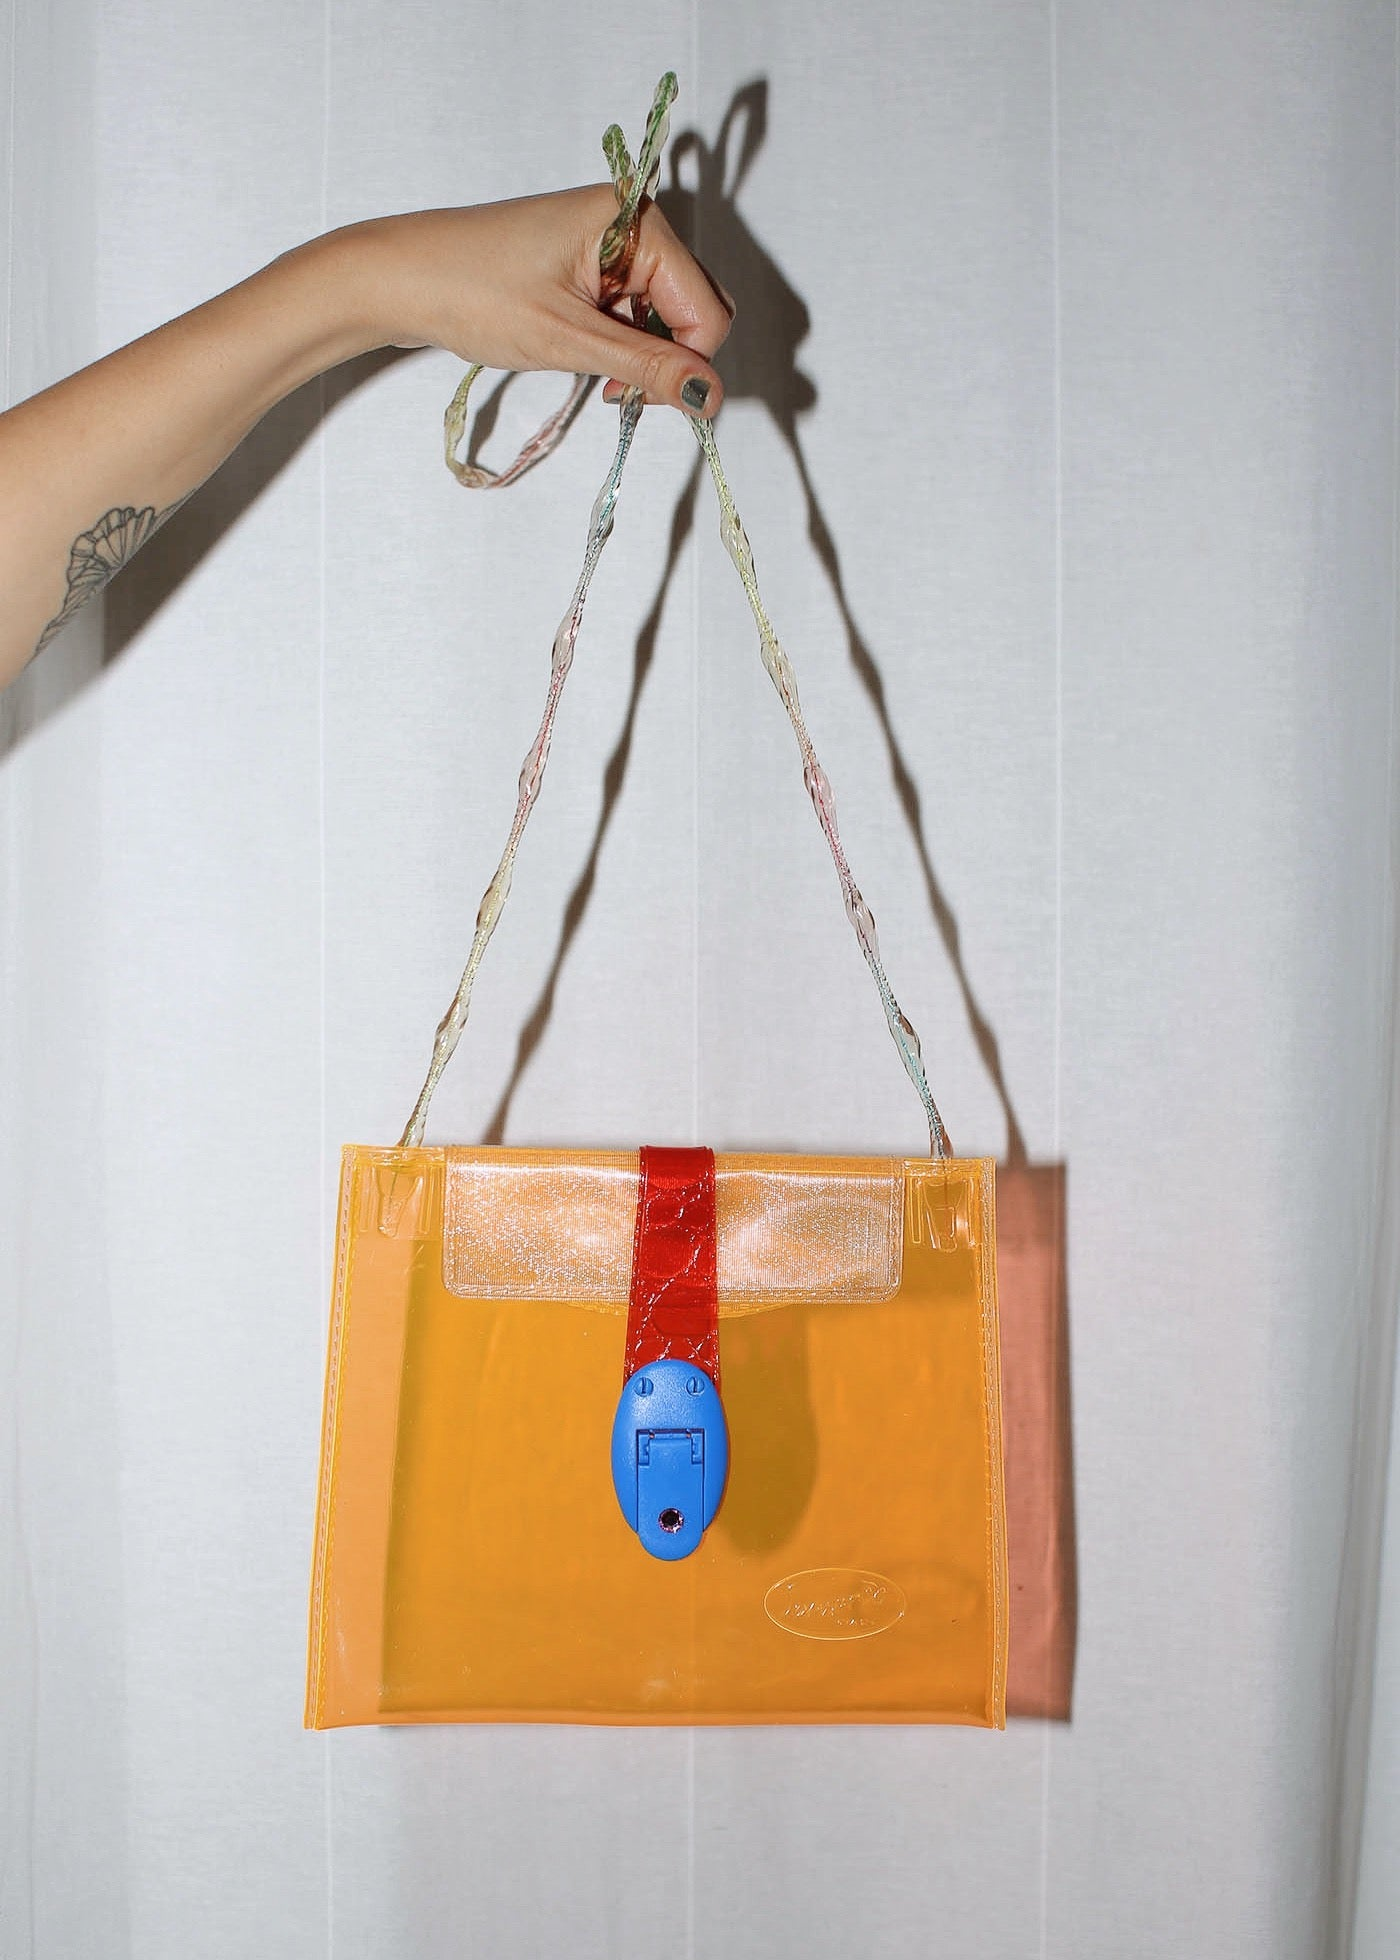 VINTAGE ORANGE CLEAR PLASTIC BAG